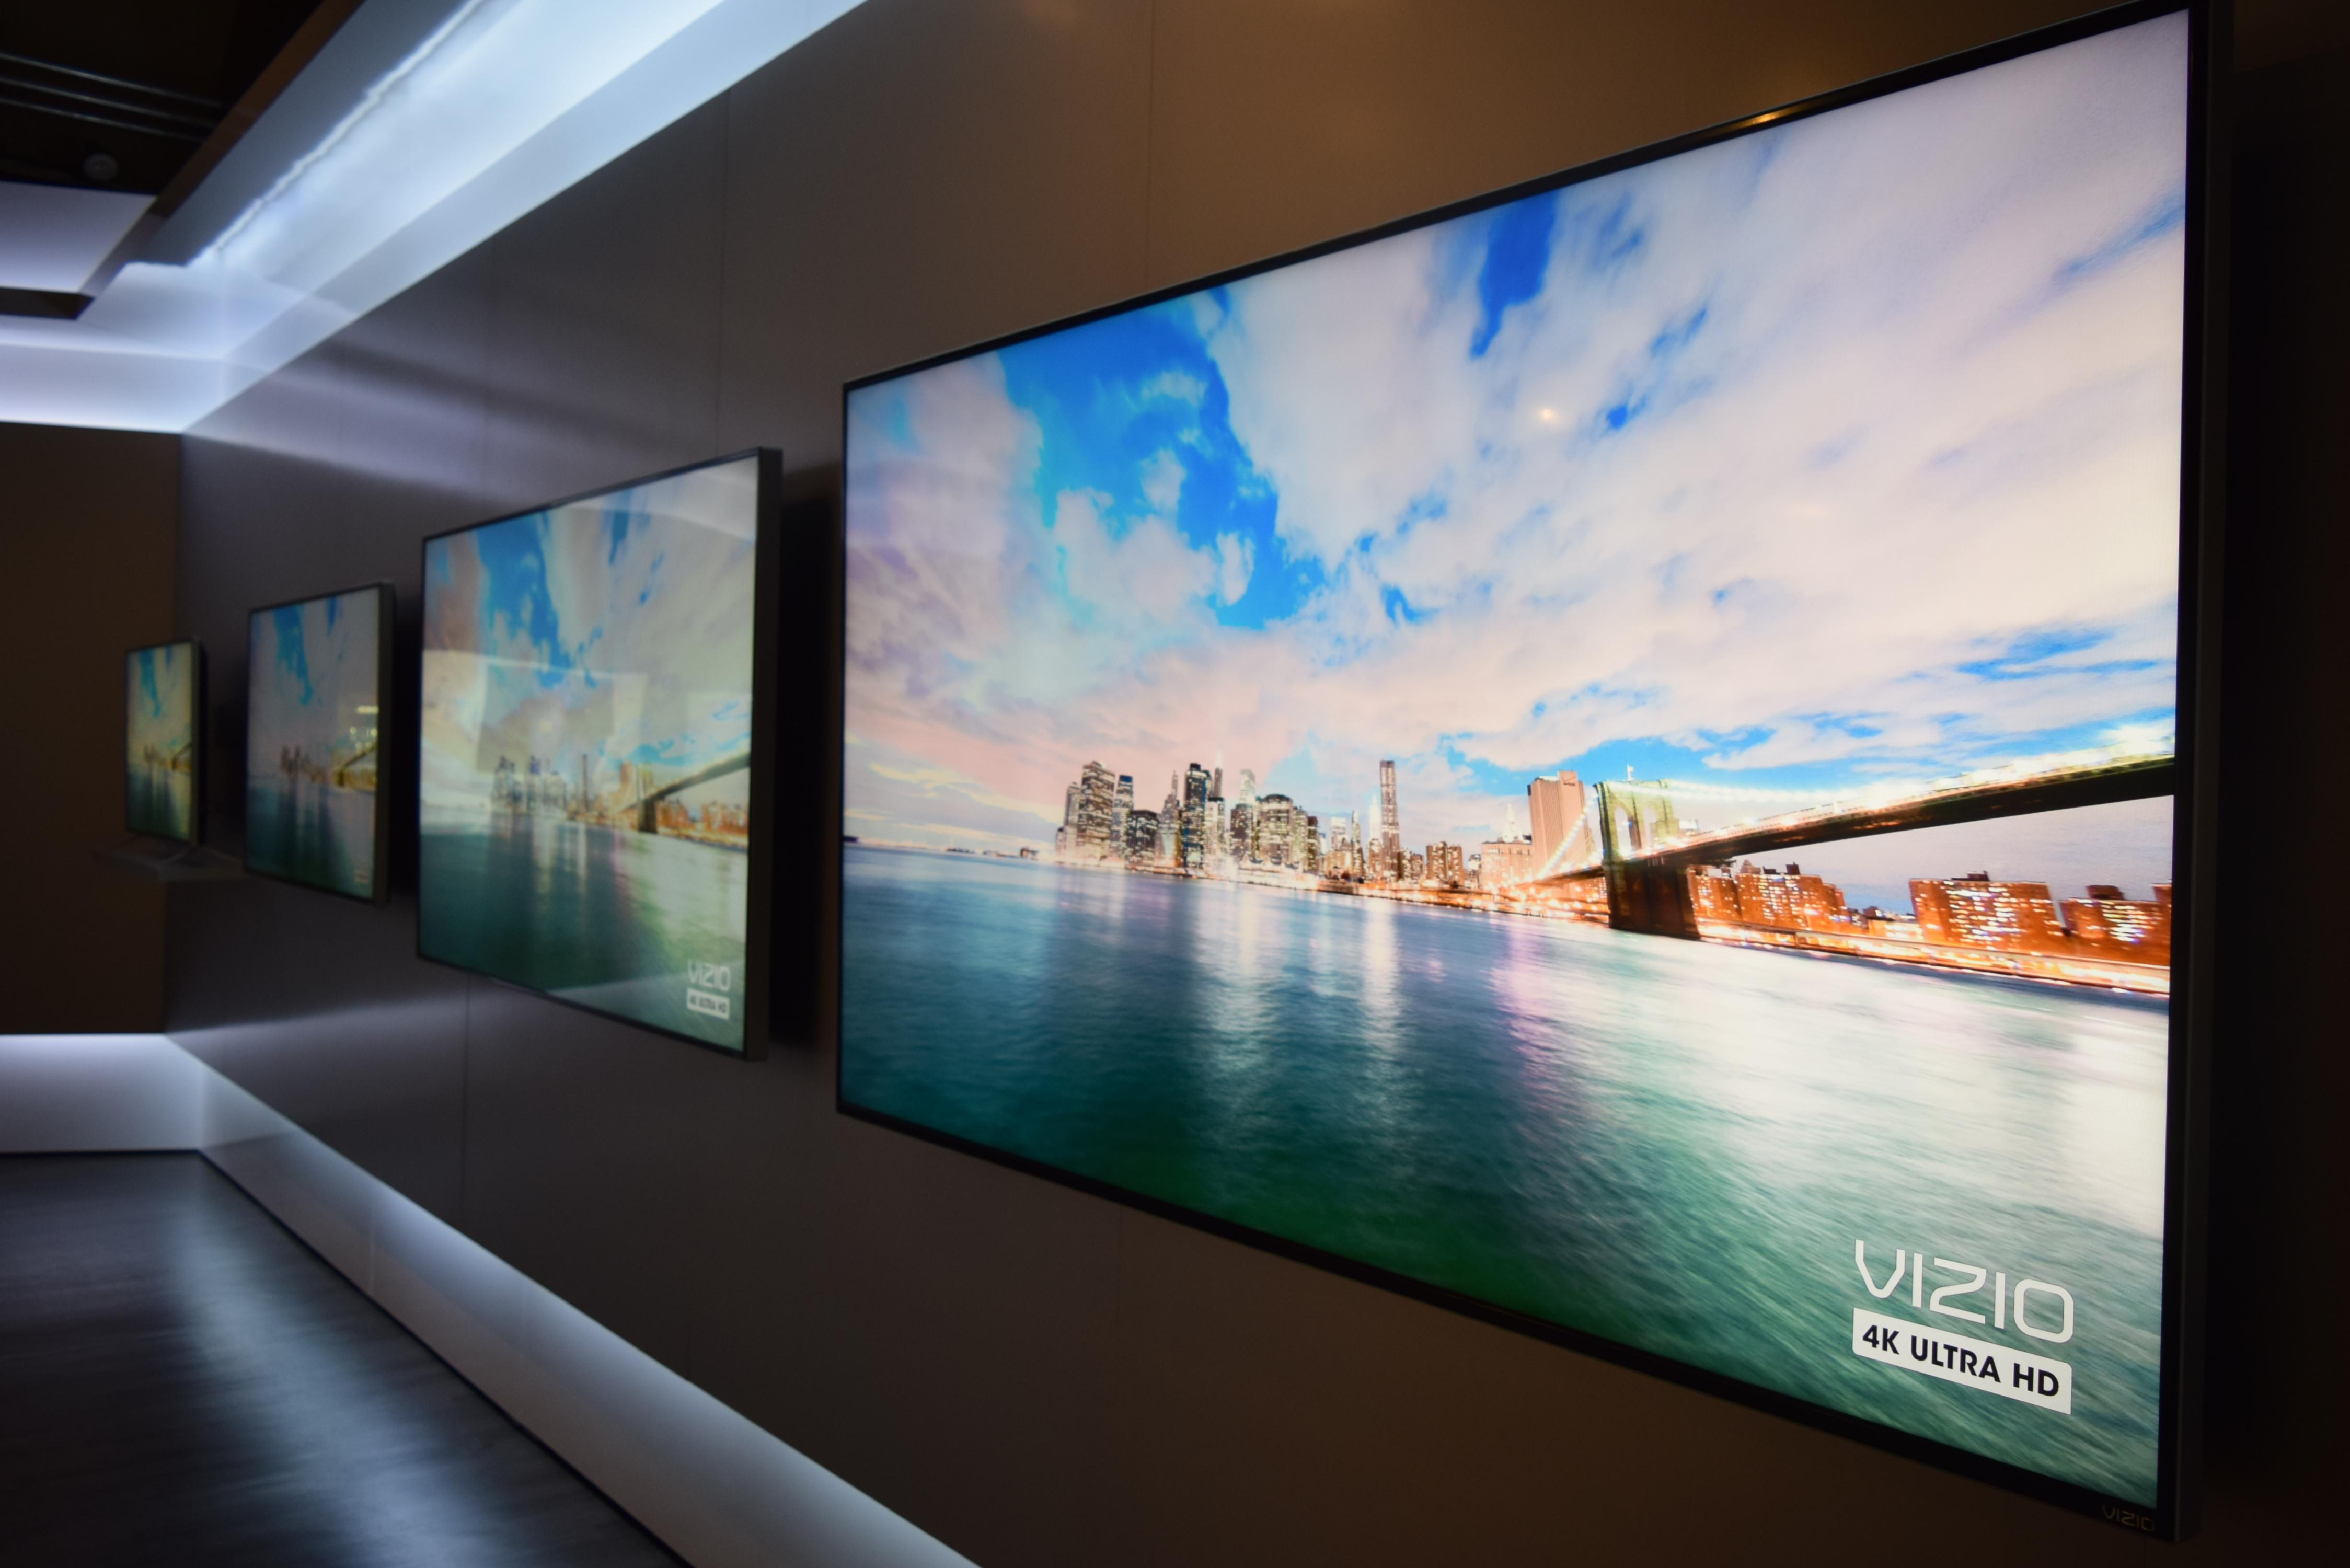 vizio tv 80 inch 4k. vizio confirms pricing, availability on new m-series 4k tvs, highlights 43-inch for $600 tv 80 inch 4k